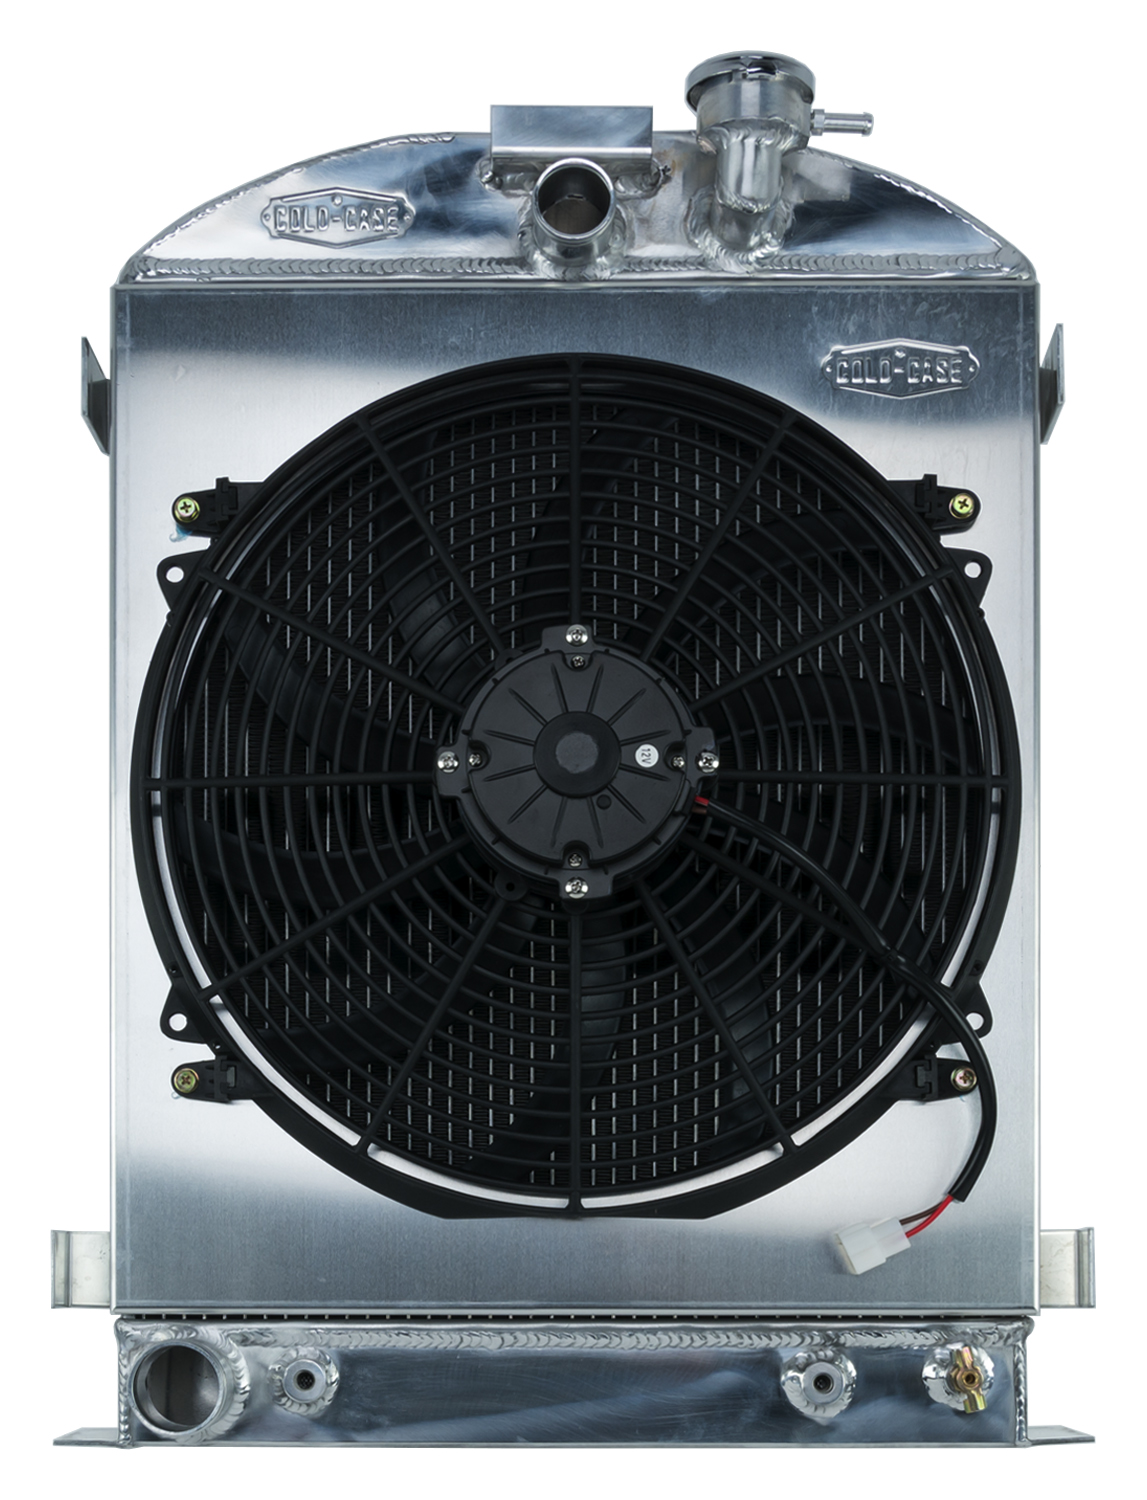 Cold Case 1932 Highboy Ford Engine 25.5 Inch Aluminum Performance Radiator And 16 Inch Fan Kit